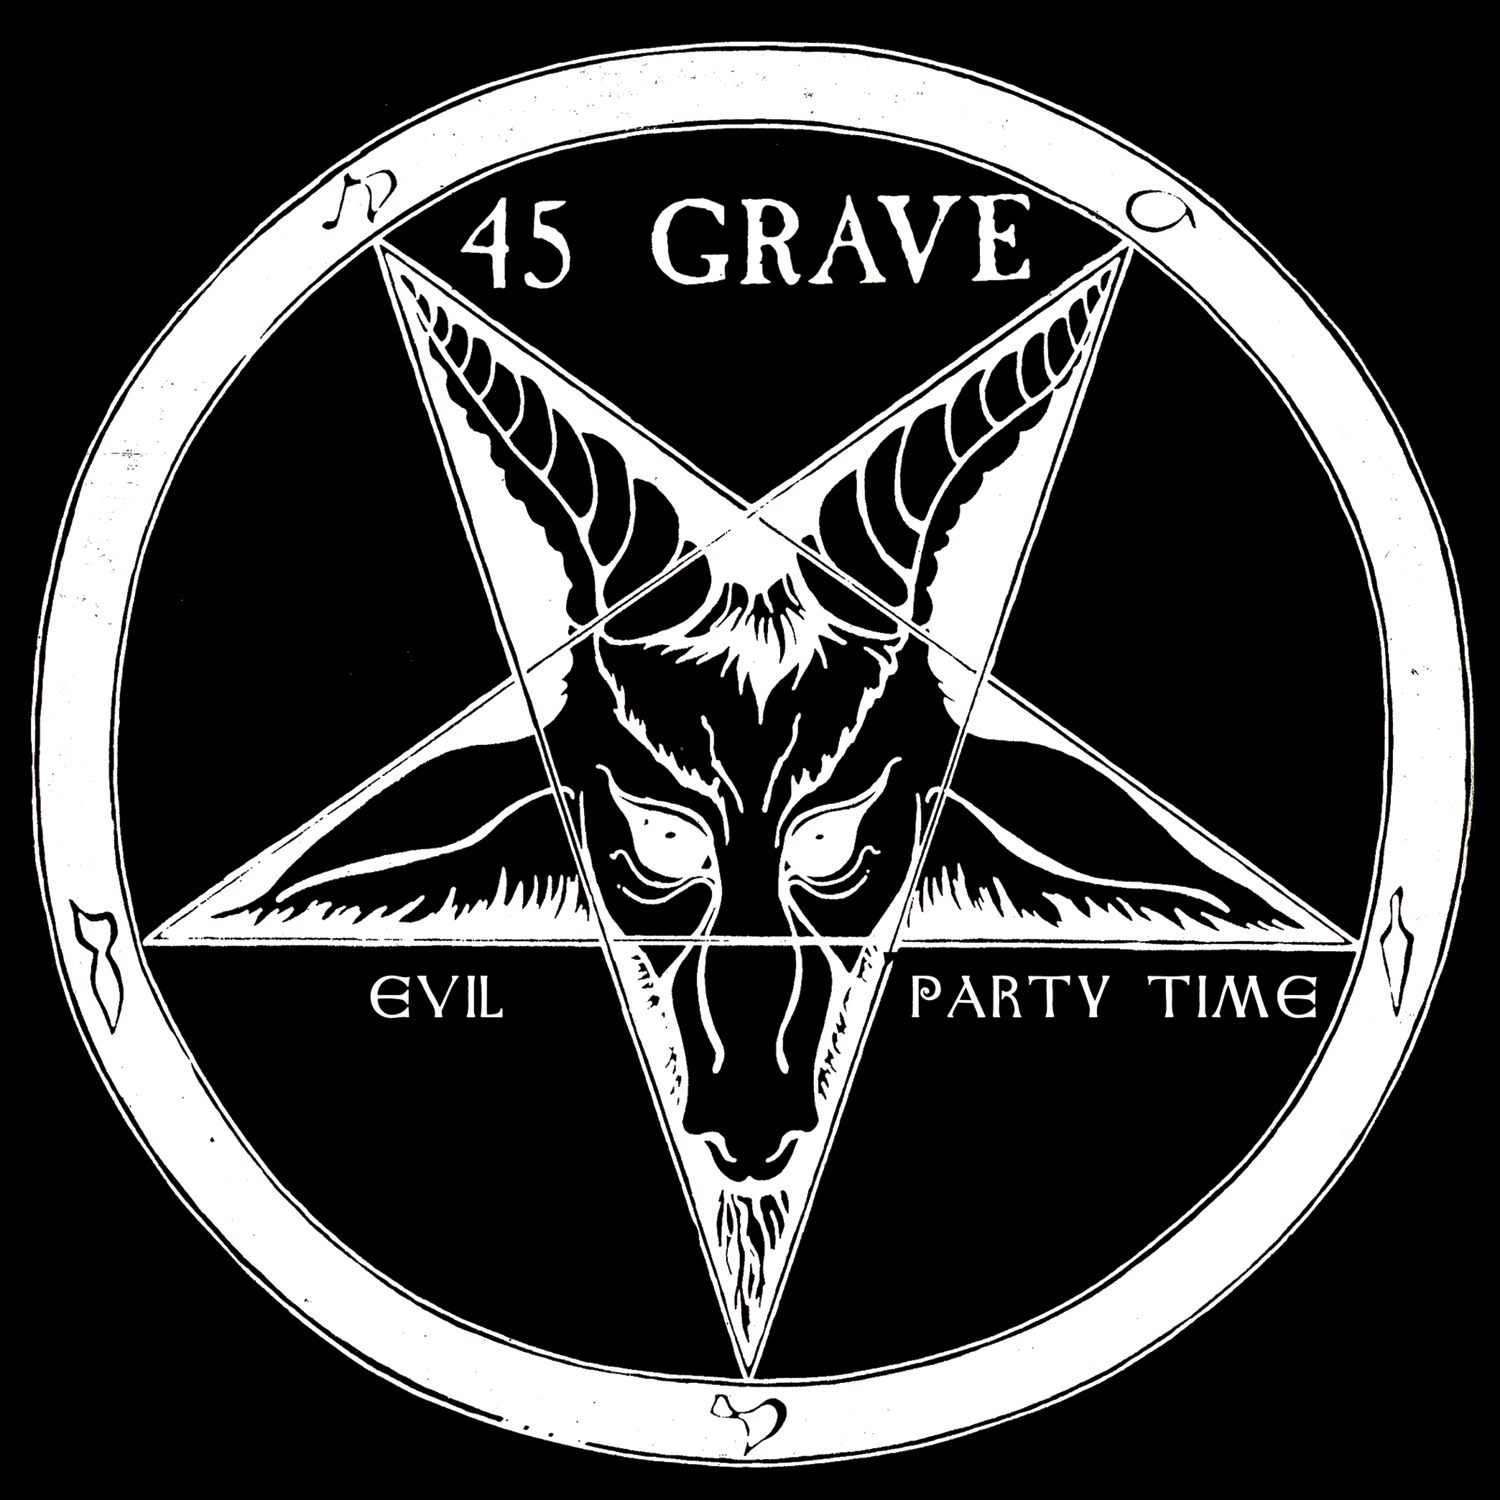 45 Grave Evil Party Time 7 Ep Cleopatra Records